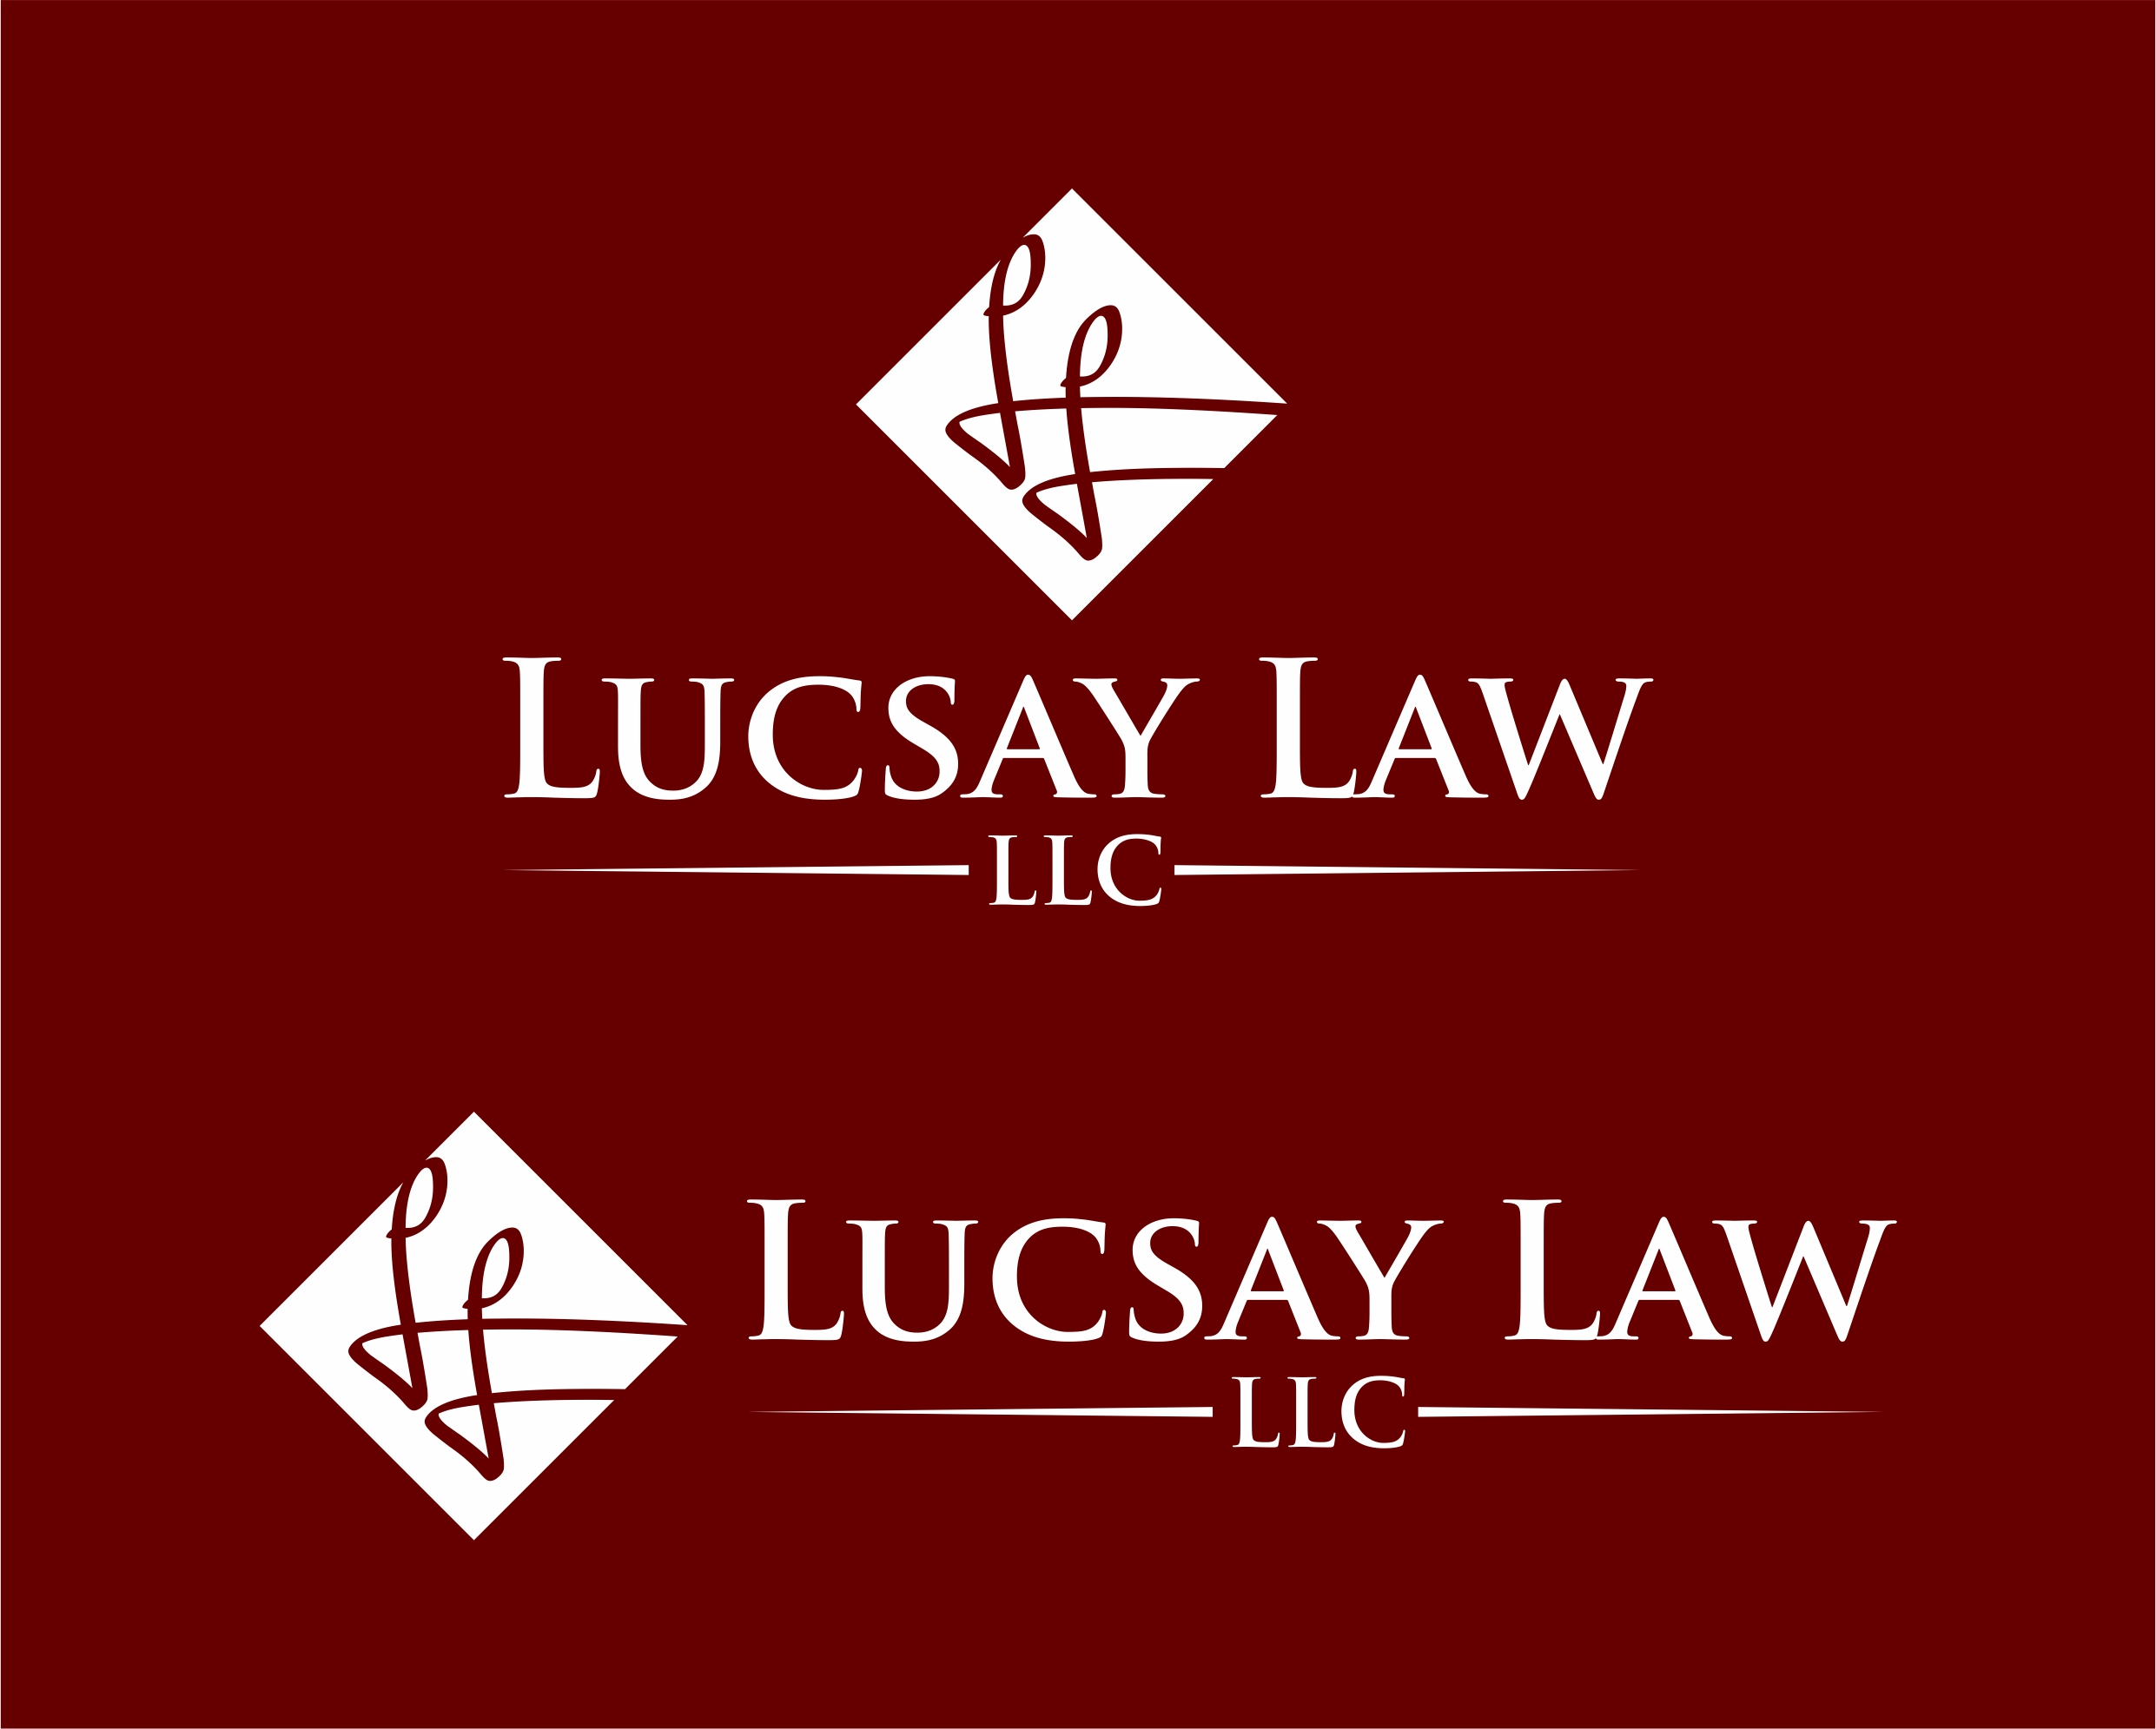 Lucsay Law, LLC